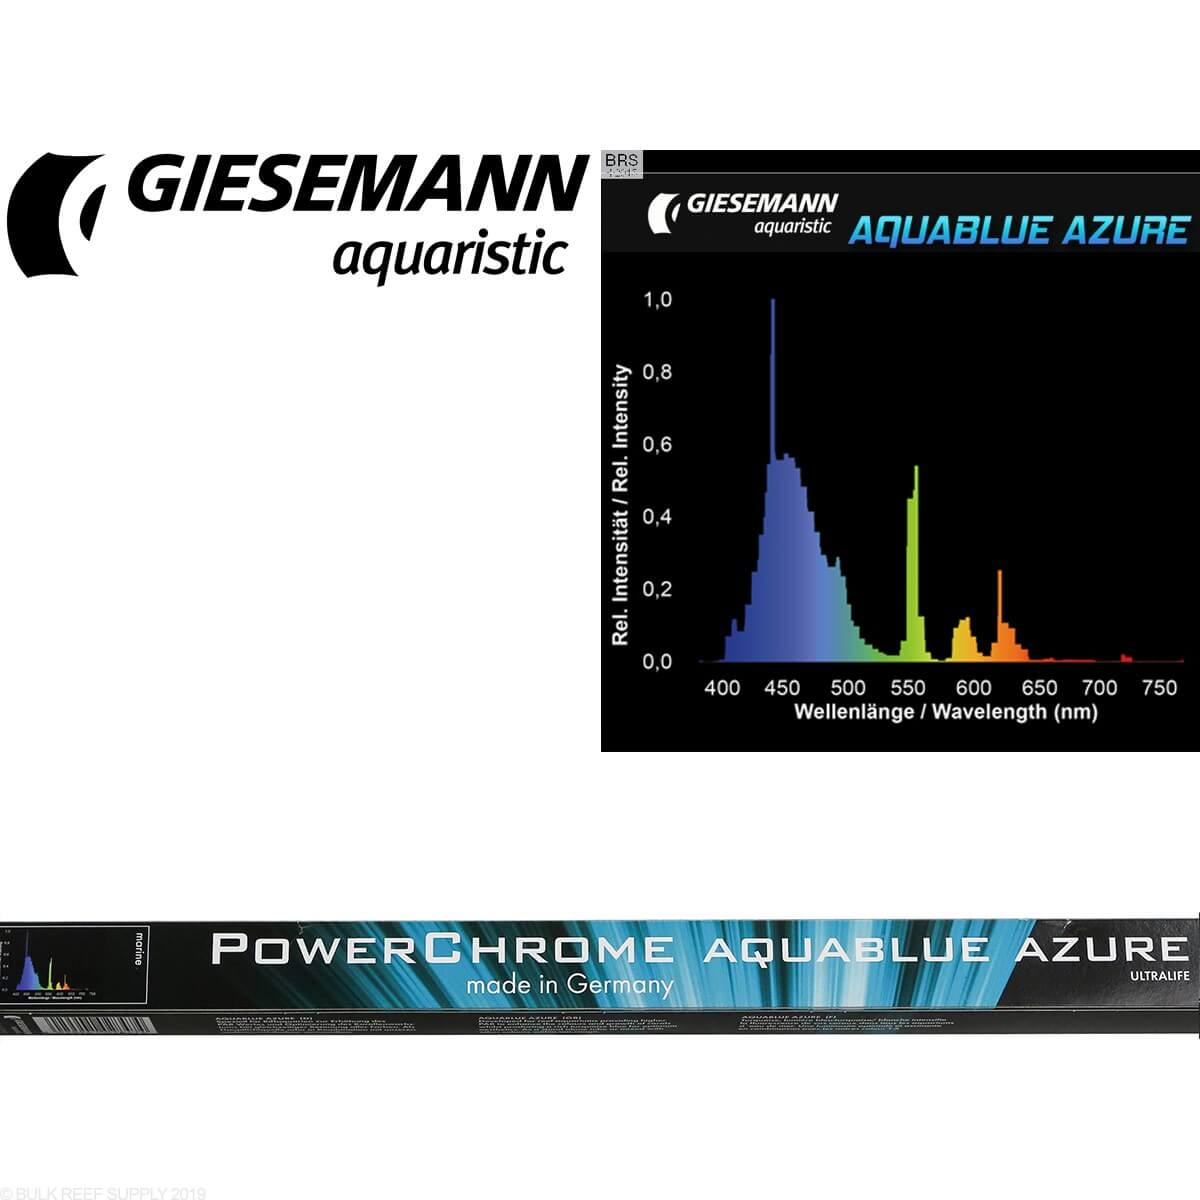 t5 tl powerchrome aquablue azure giesemann